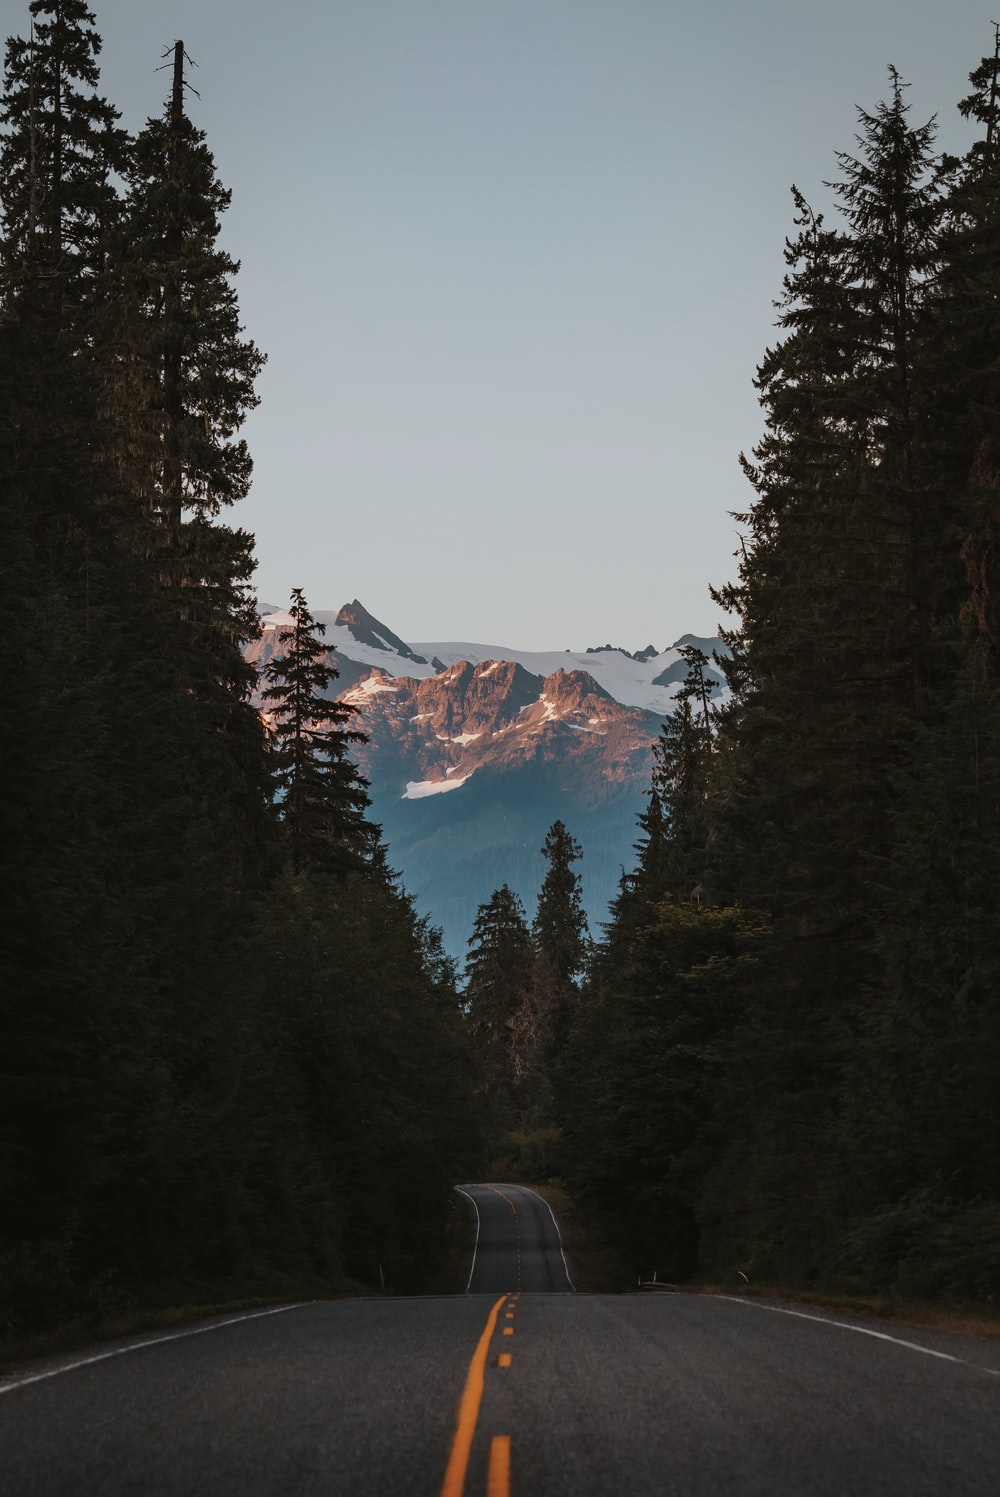 Landscape Photography Of Mountains Trees And Road